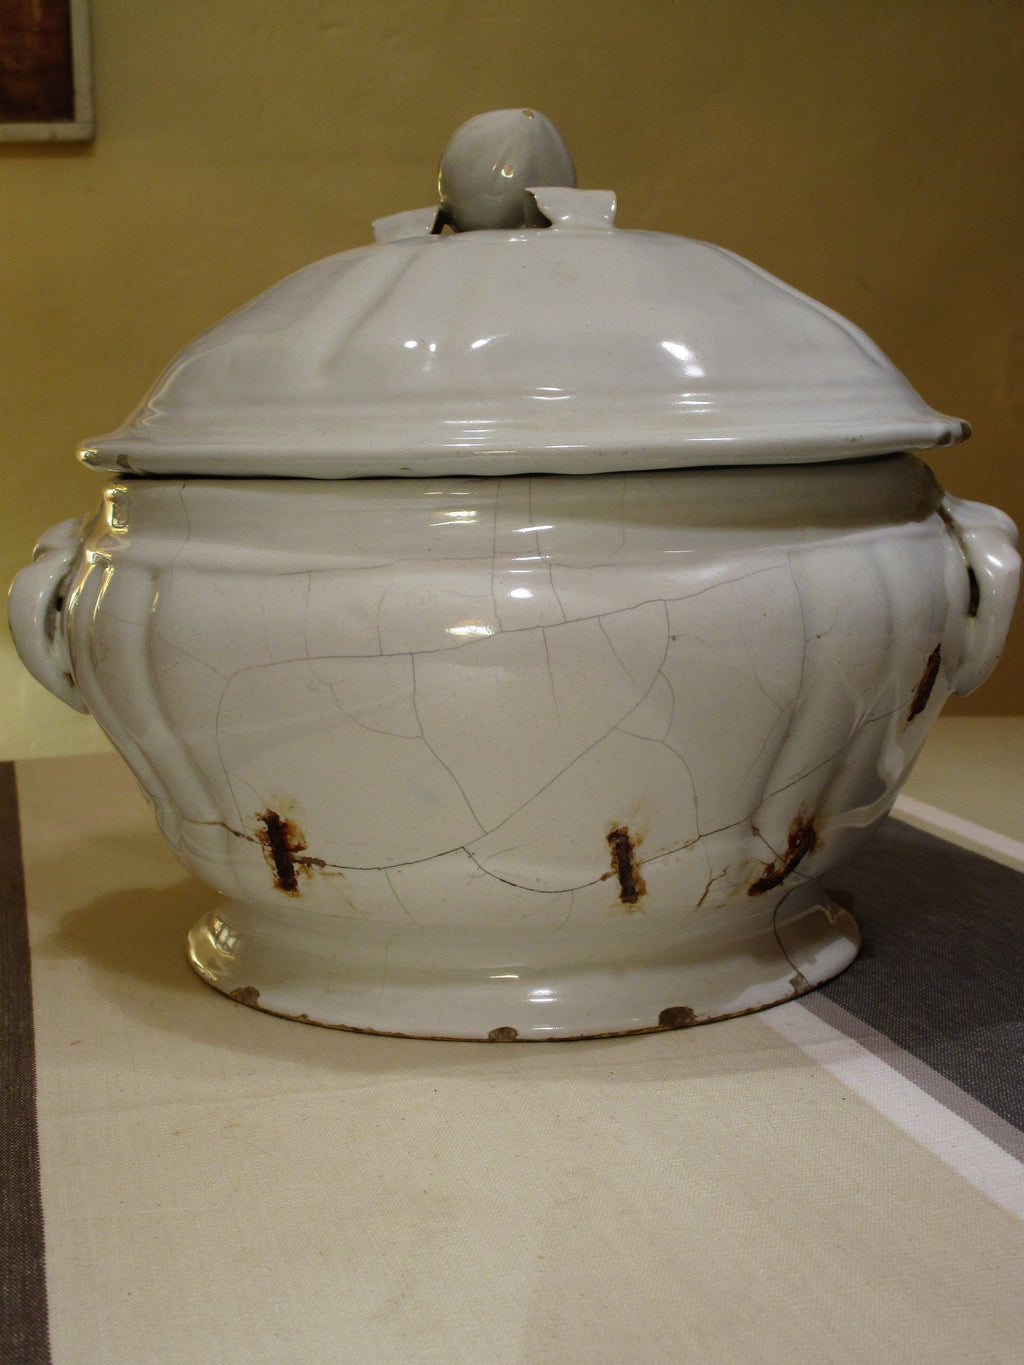 18th century French soup tureen - ironstone